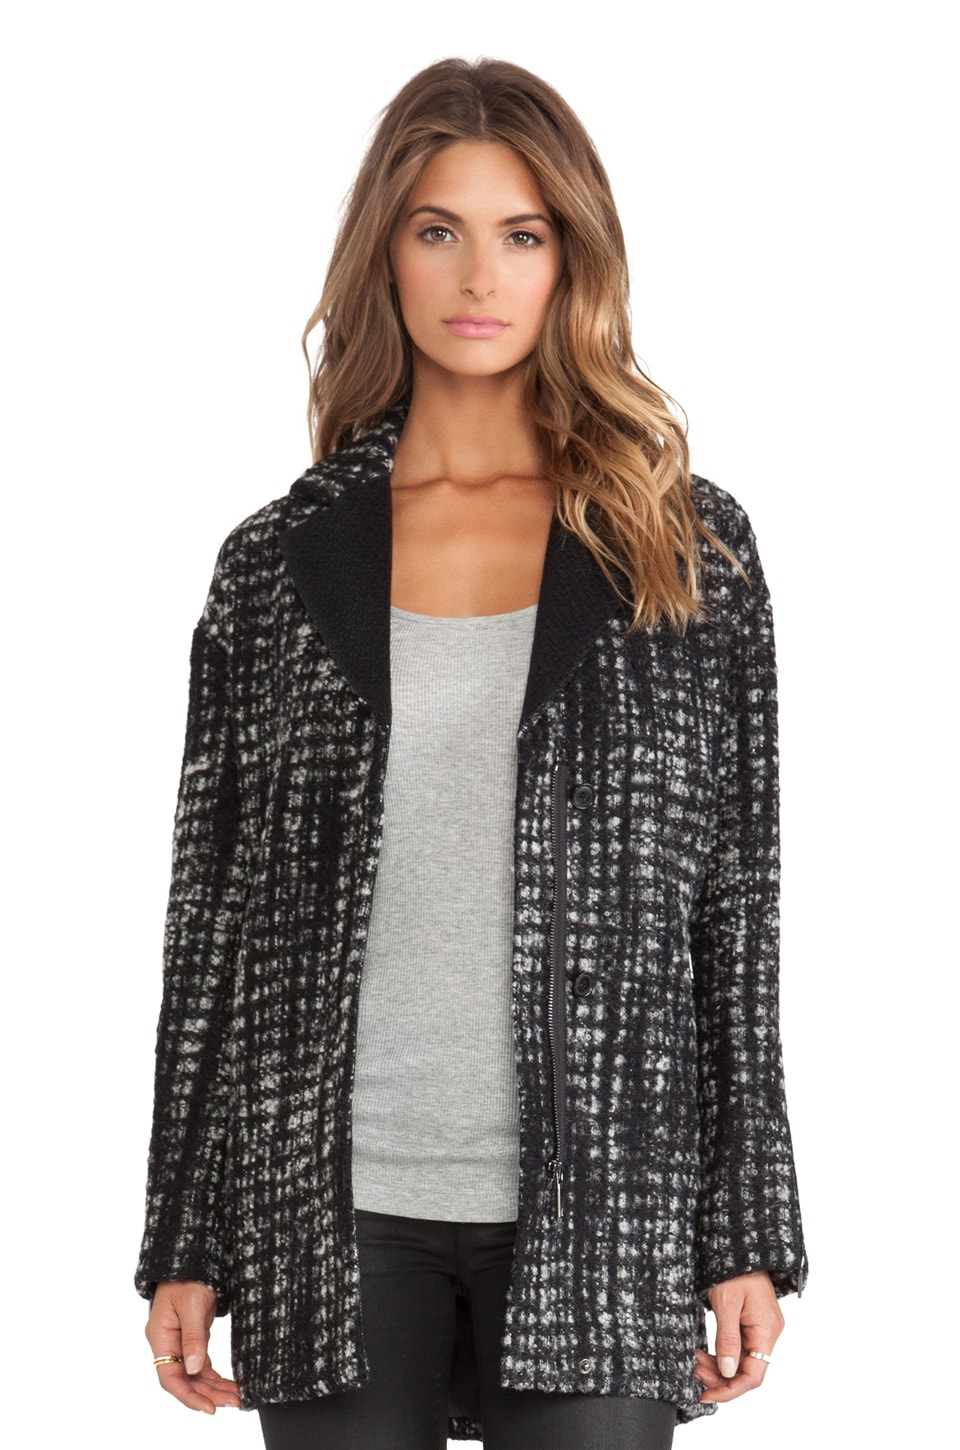 AB Briana Herringbone Jacket in Black & White